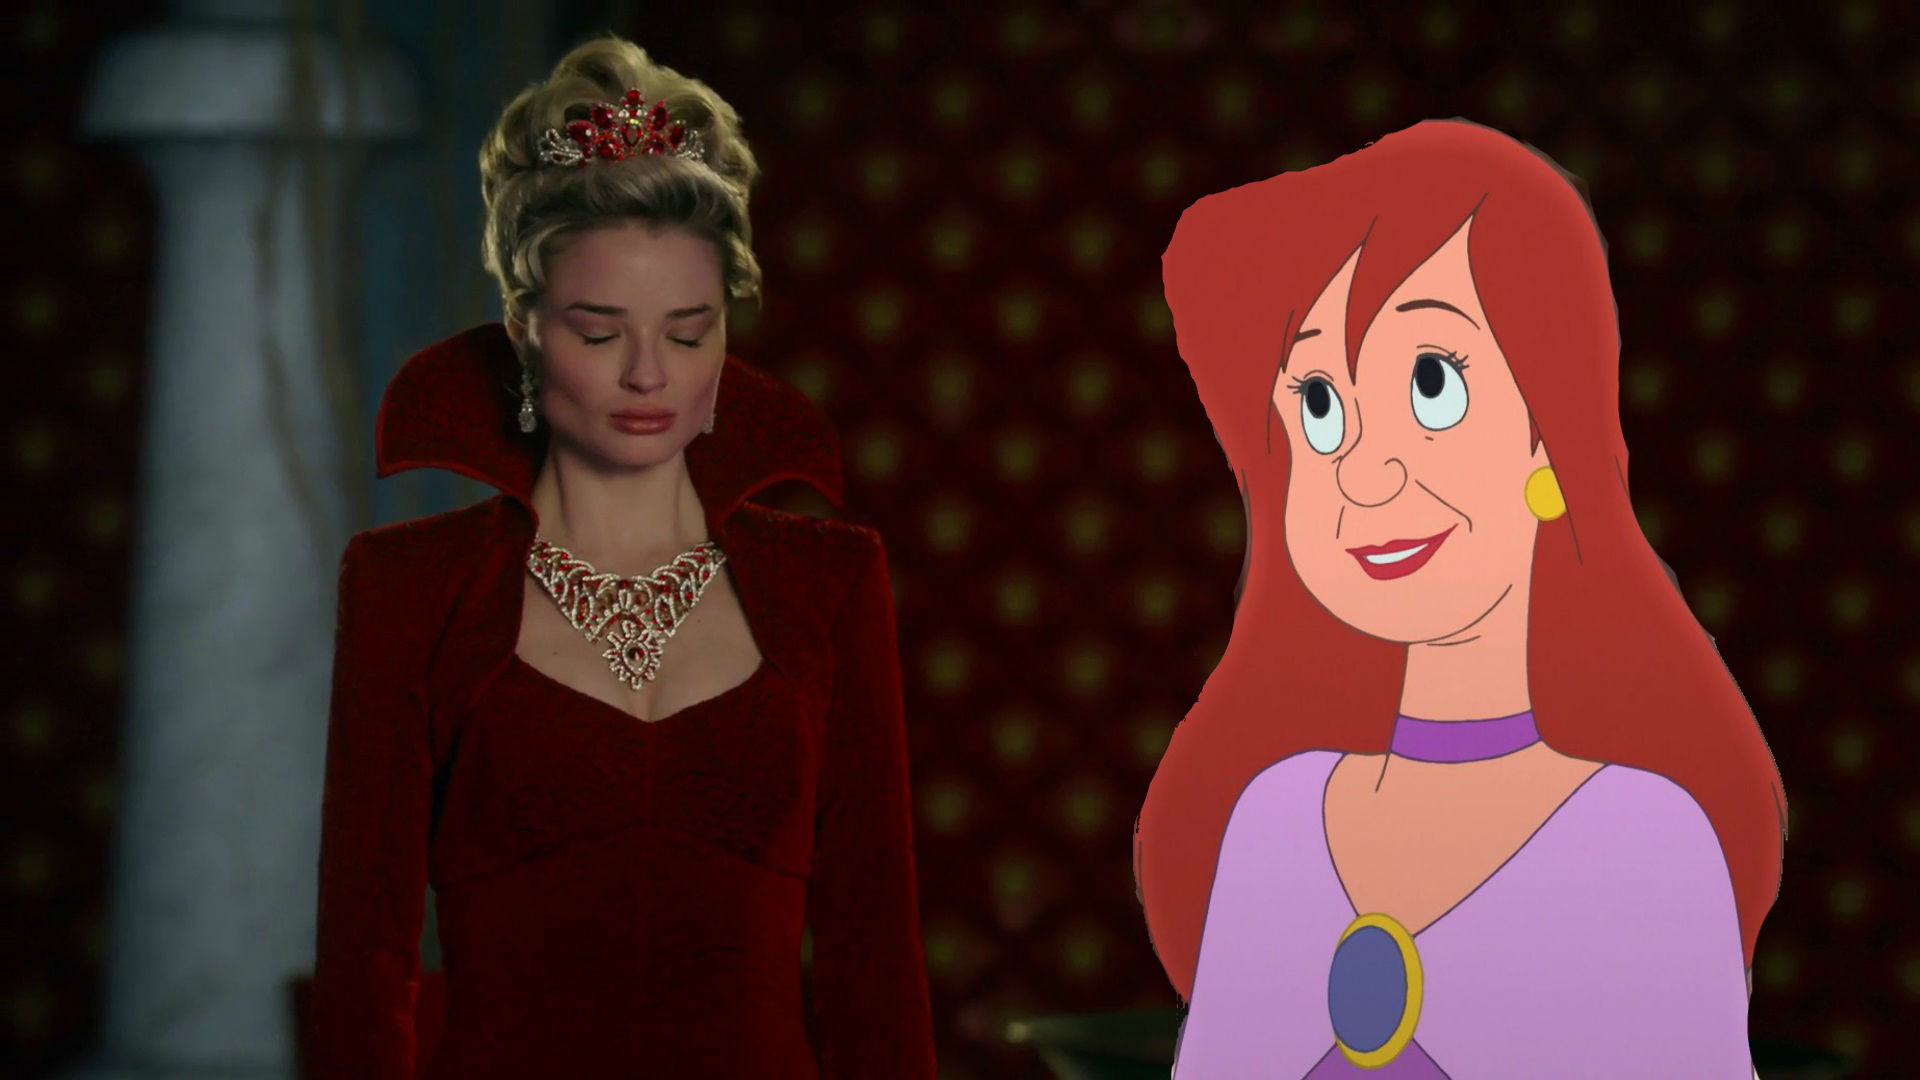 Công chúa Anastasia Tremaine with her animated Disney counterpart